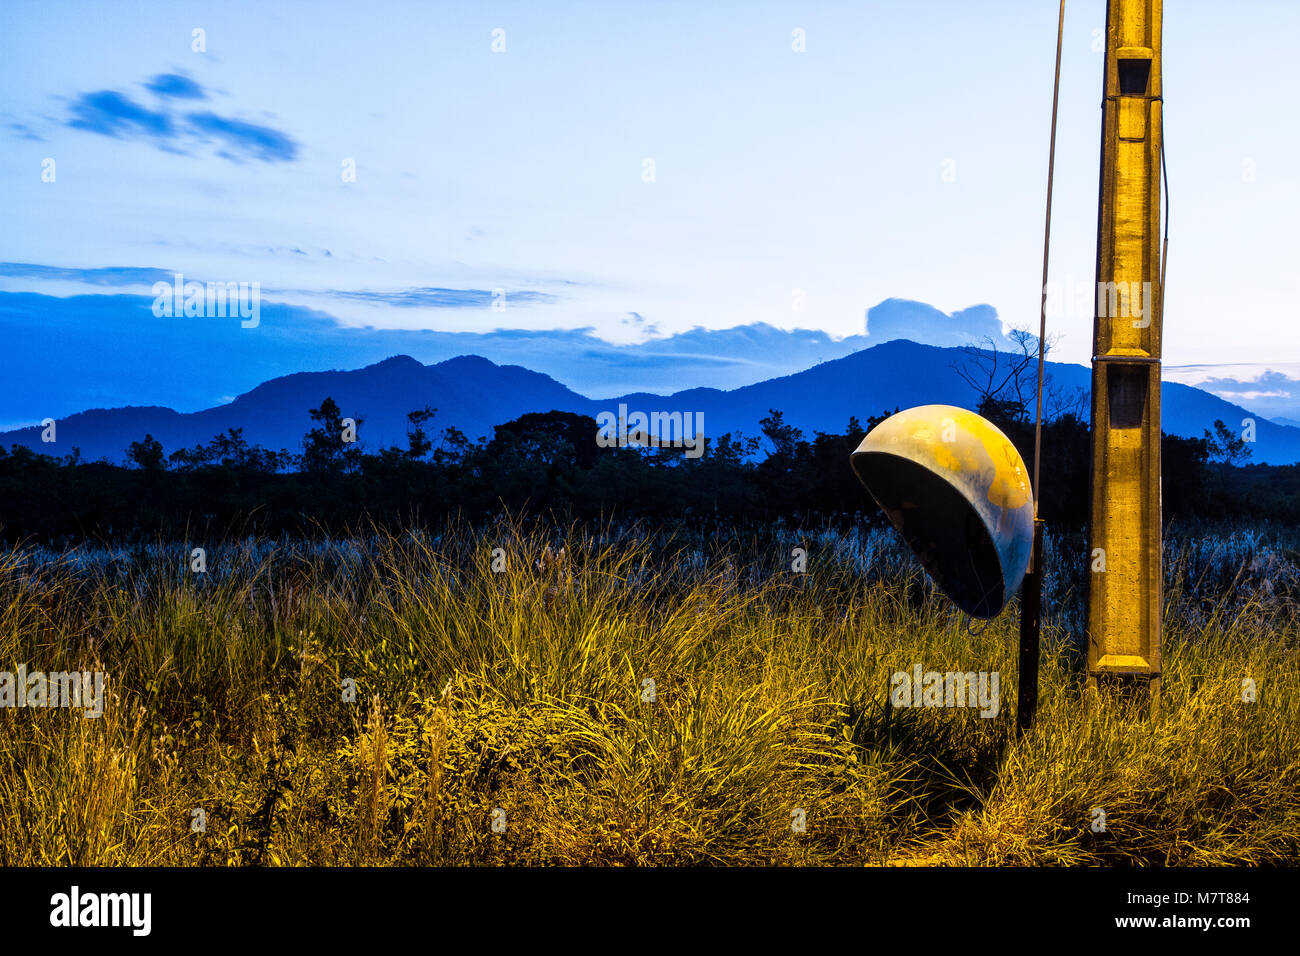 Public phone booth in a vacant lot at evening. Florianopolis, Santa Catarina, Brazil. Stock Photo